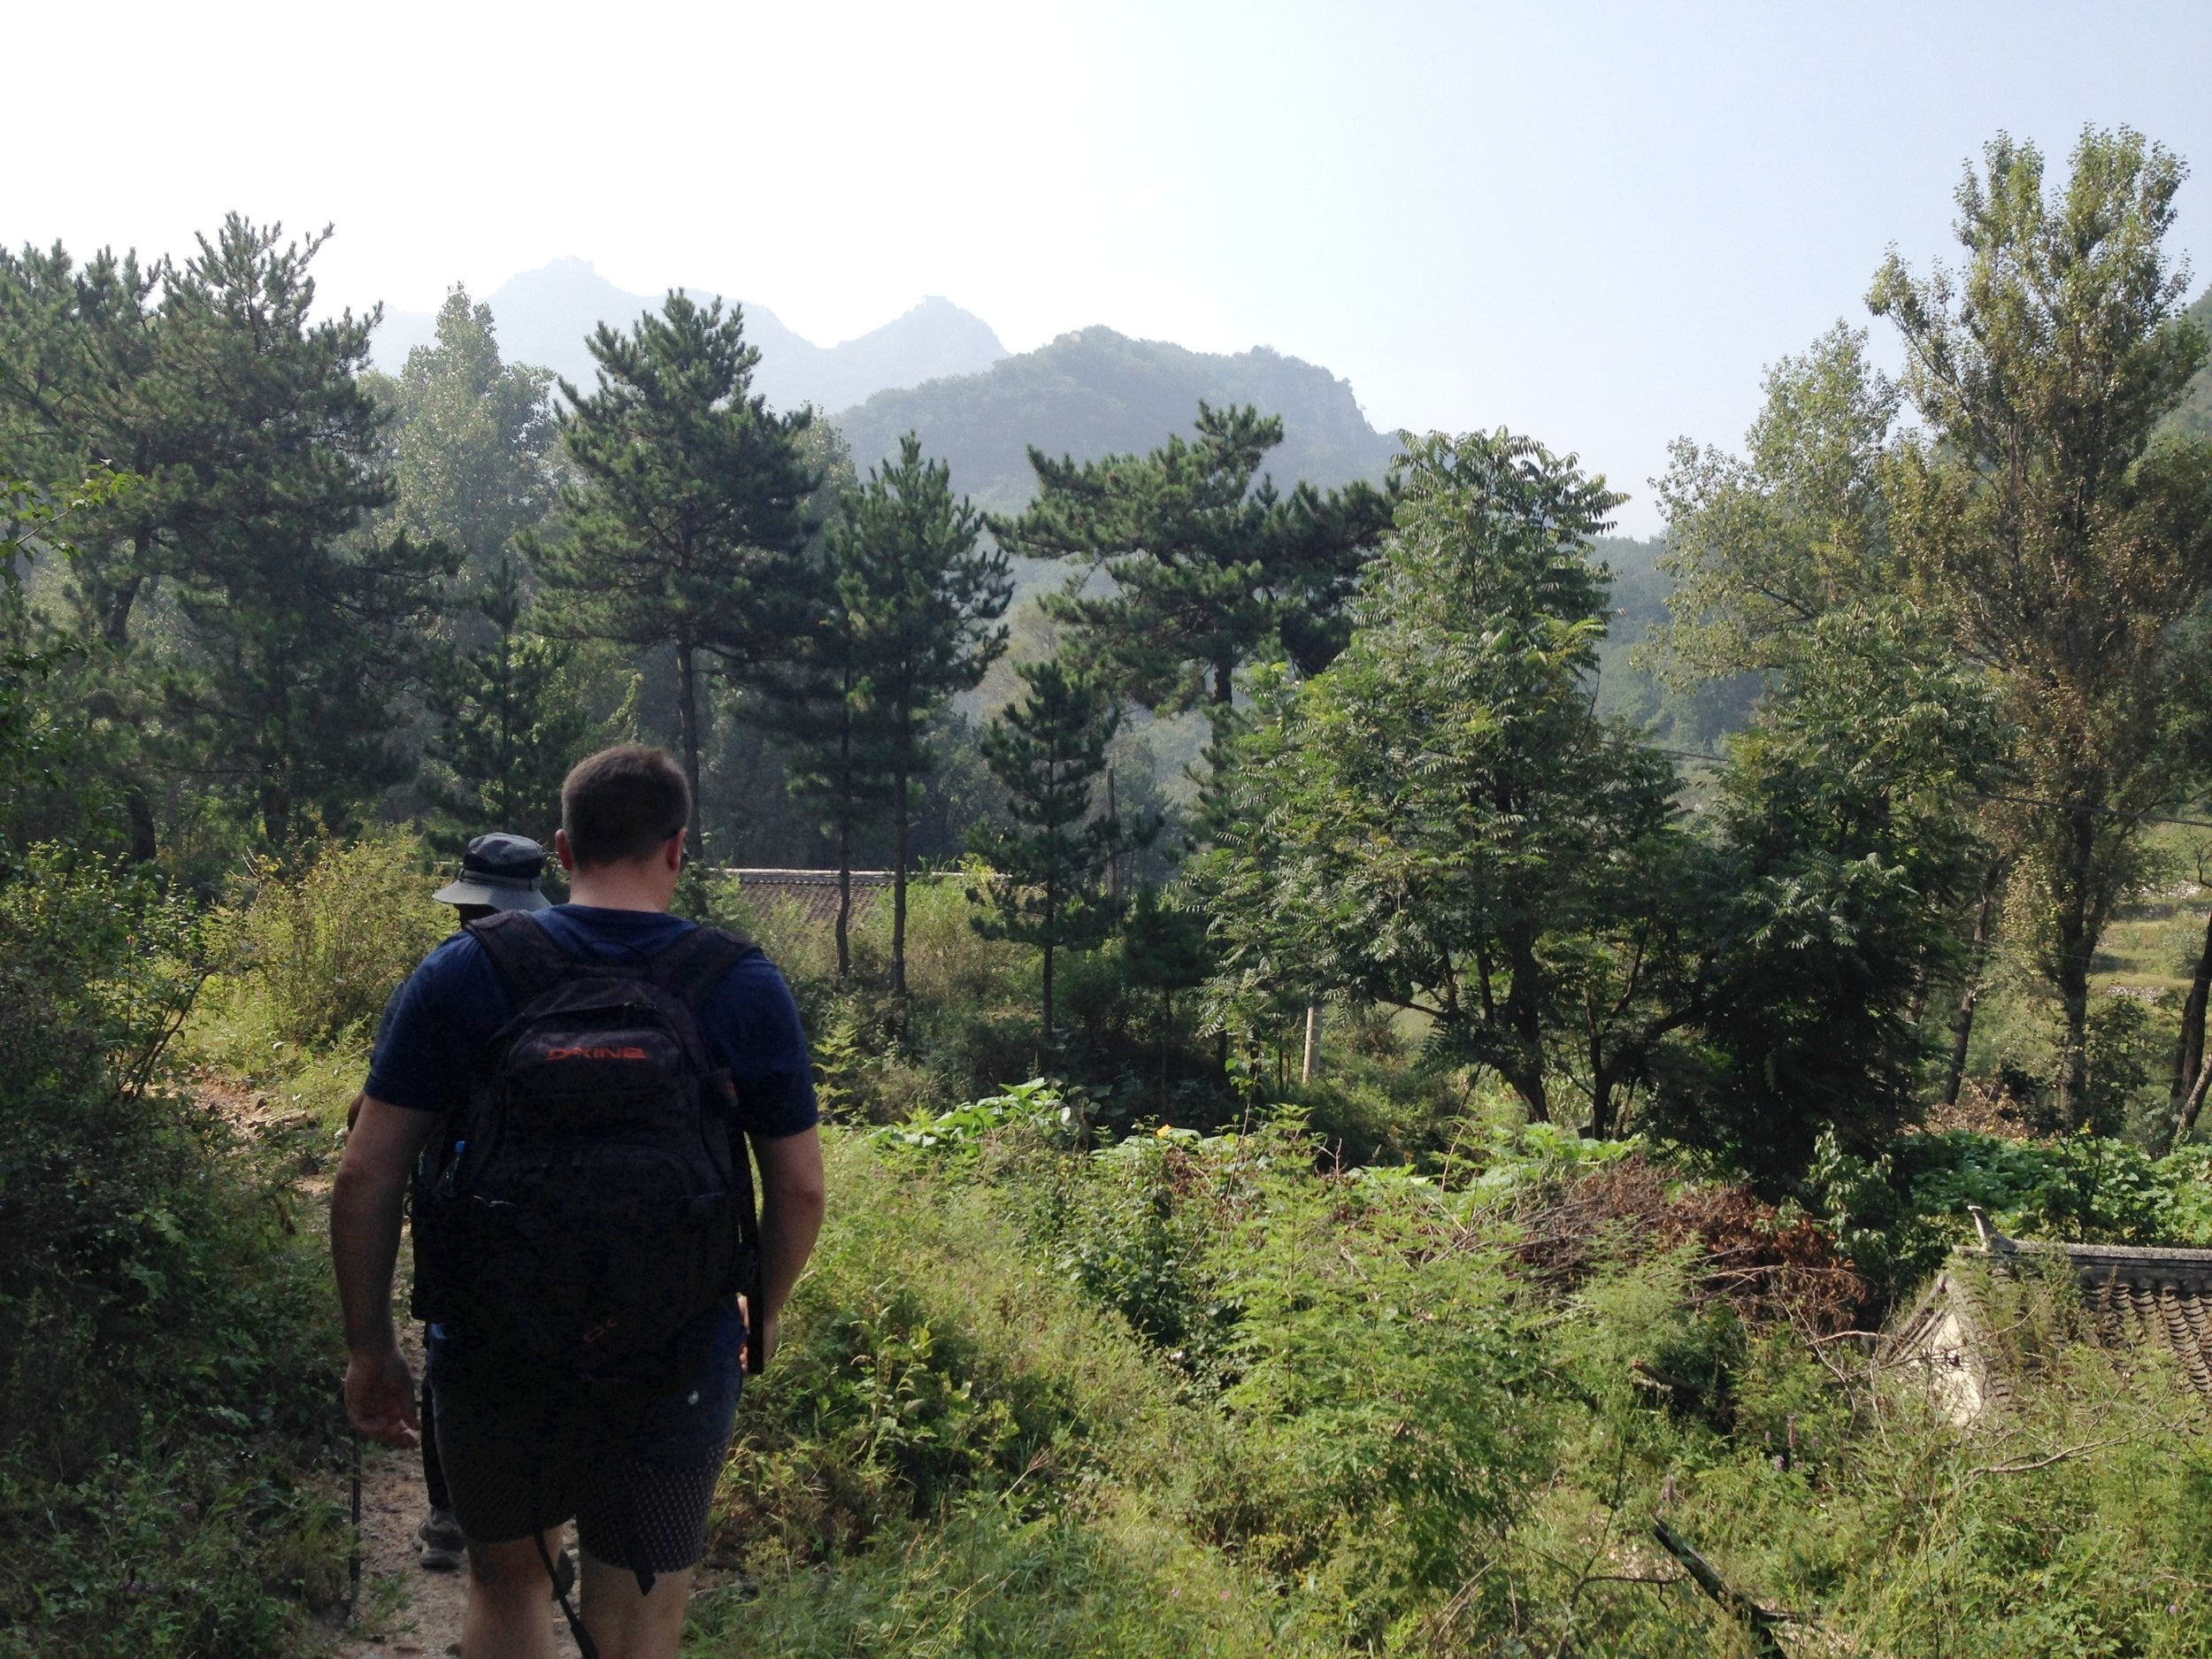 Xizhazi Village: the start of our one hour walk to reach Jiankou Tower.